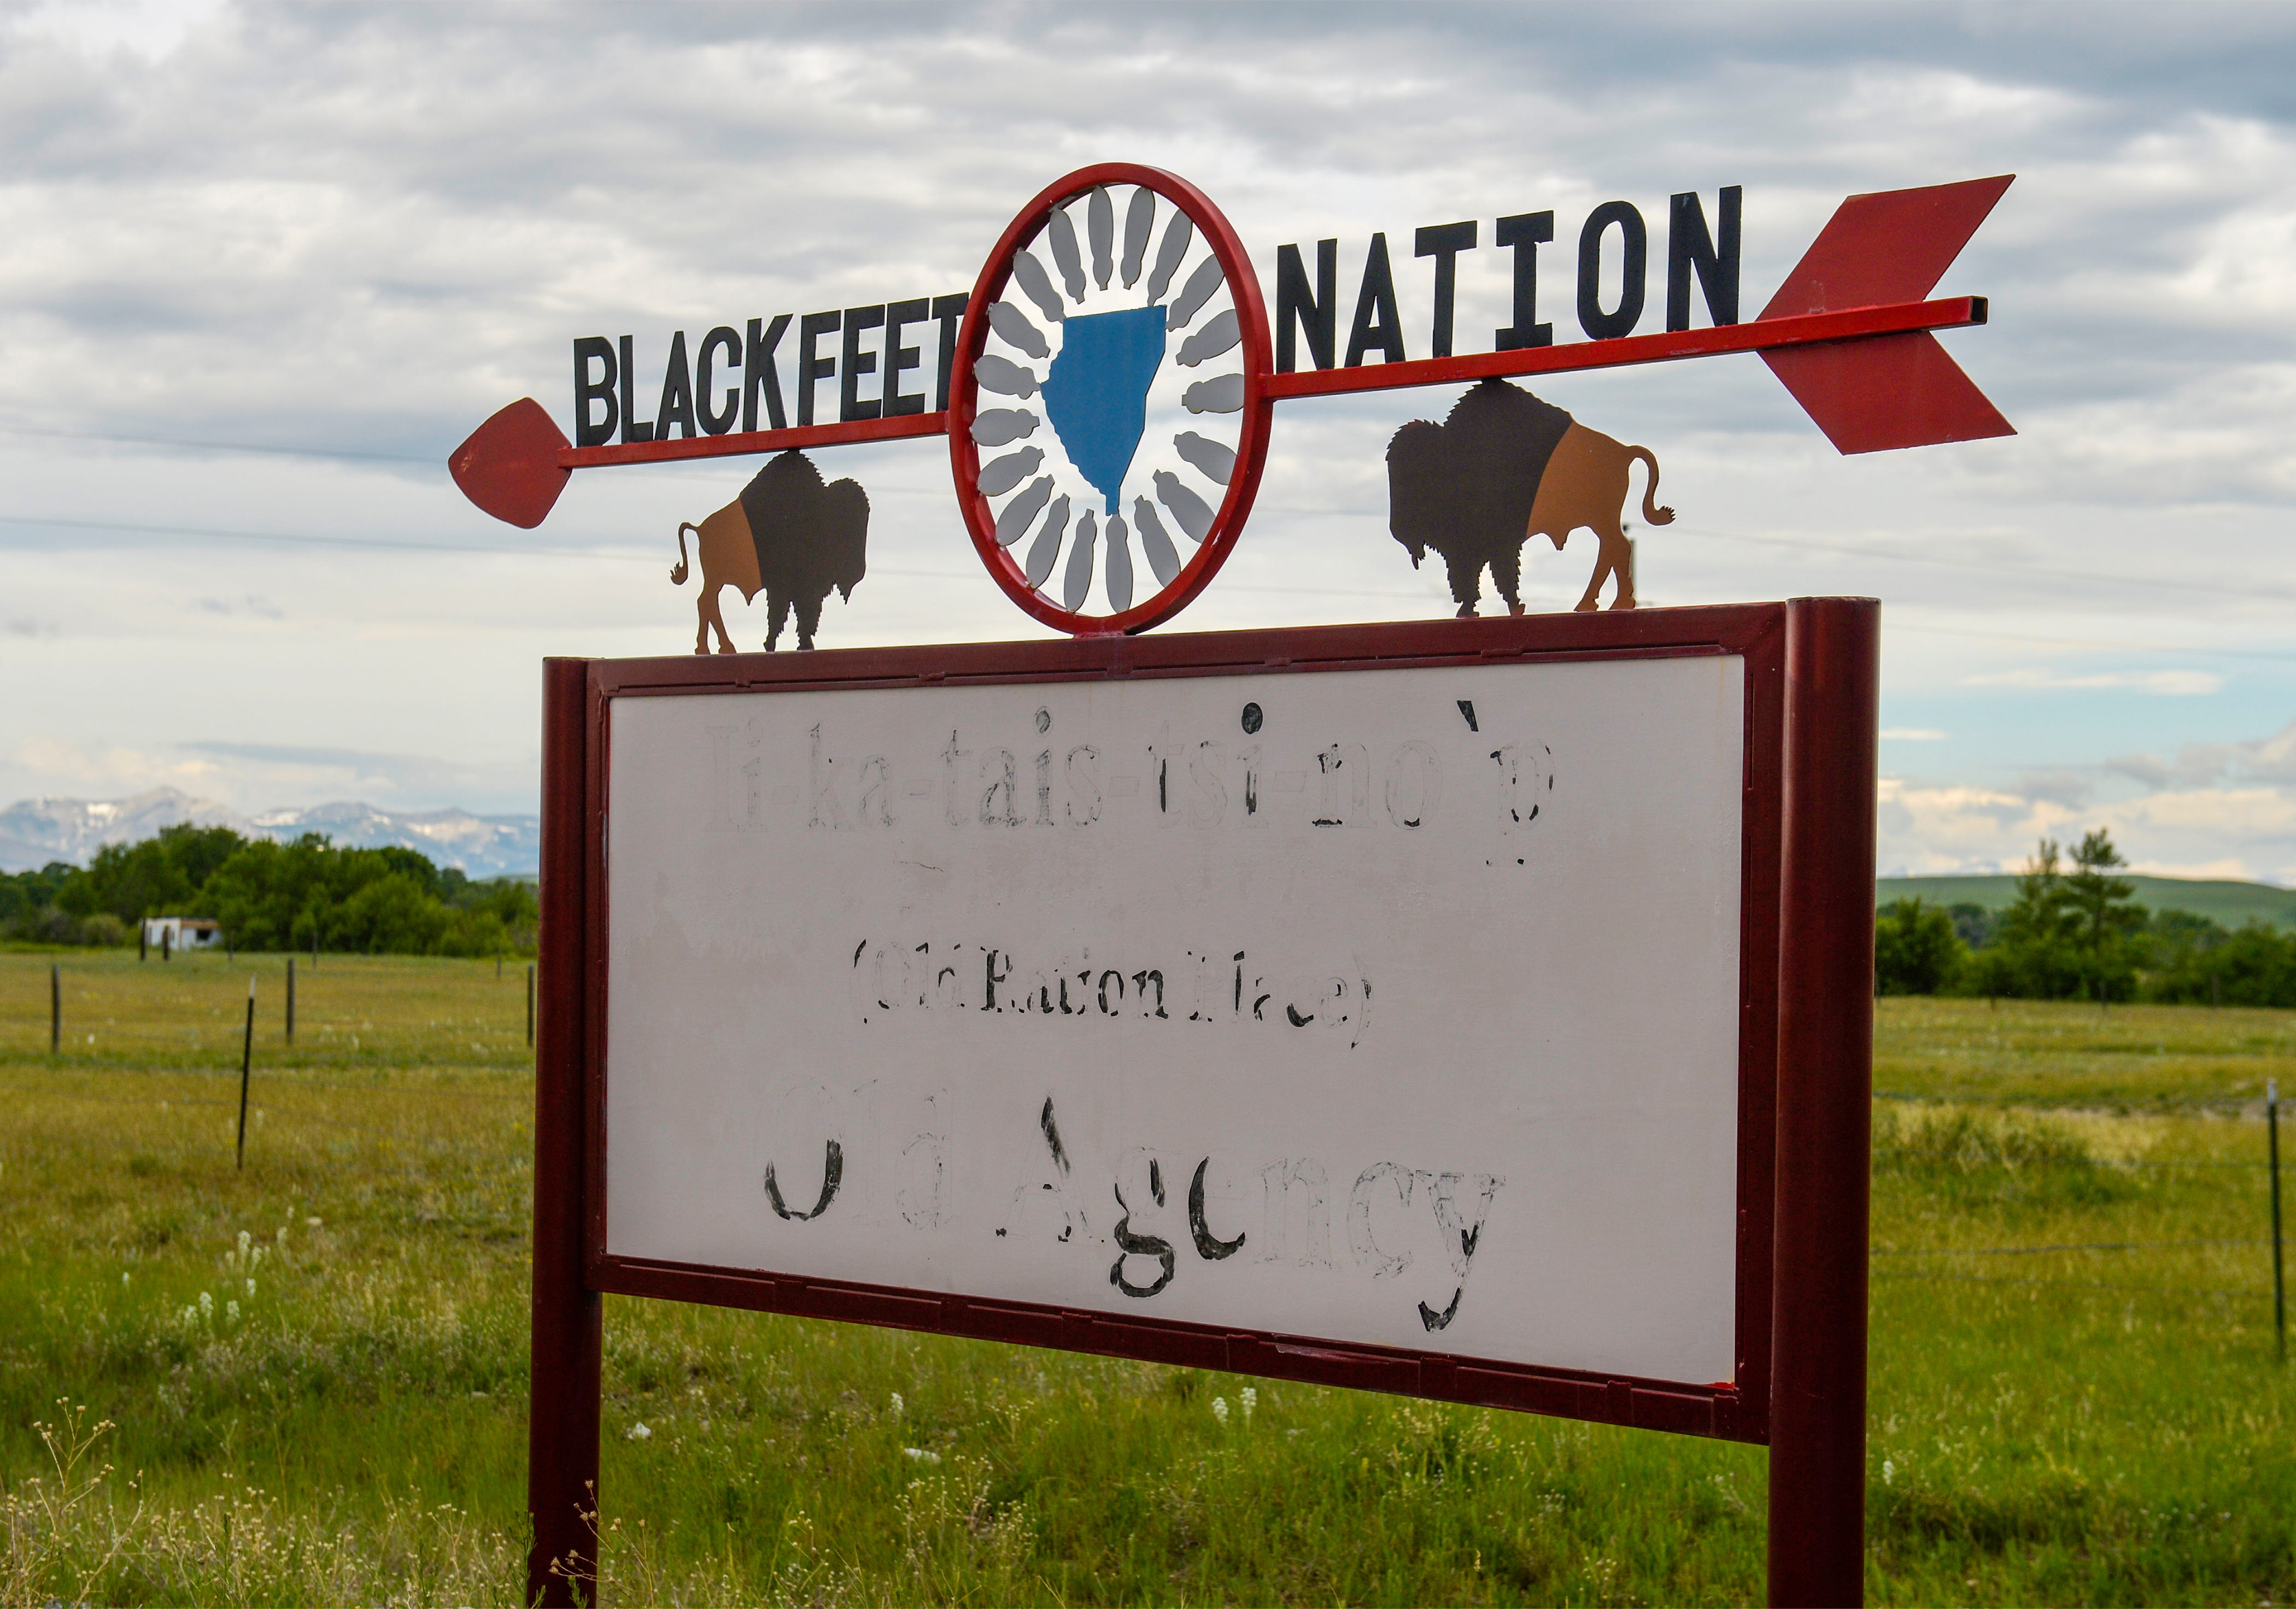 The Spotted Eagle Fire in 2015 threatened the community of Heart Butte which lies on the Blackfeet Indian Reservation along the eastern side of the Rocky Mountain Front in northcentral Montana.  Stored up fuels, wind and terrain made the fire hard to battle.  These conditions can be found in many of the communities that line Montana's Rocky Mountain Front.